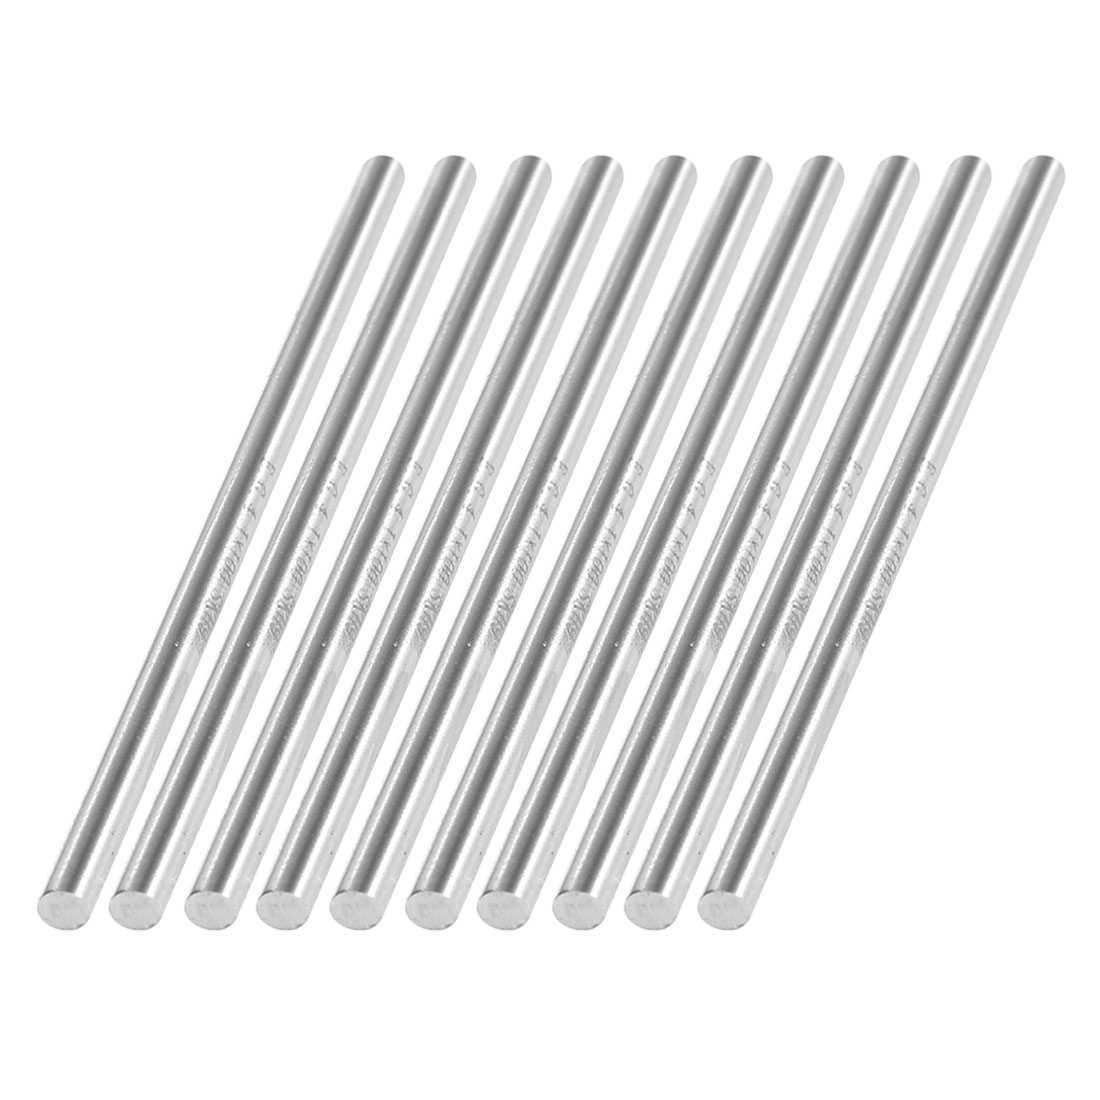 Unique Bargains 4.1mm x 100mm HSS Graving Tool Round Turning Lathe Carbide Bars Stick 10pcs